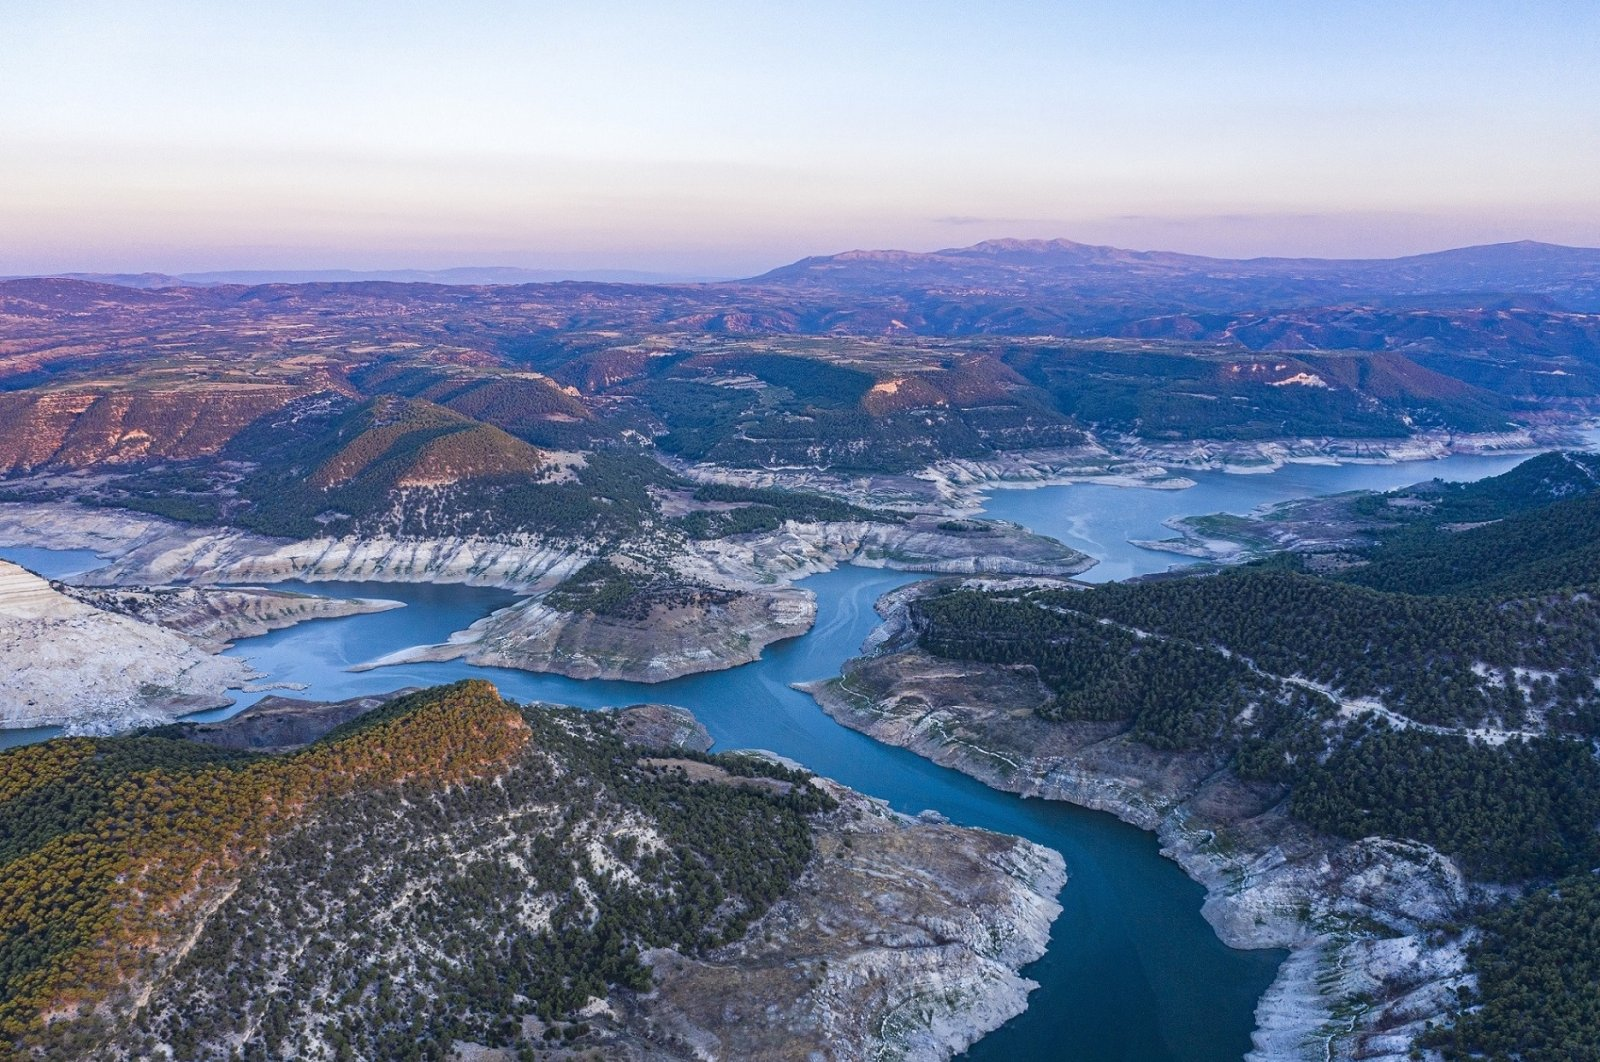 The Meander is Turkey's Eegean region is under the threat of being polluted and drying up. (Courtesy of WWF Turkey)